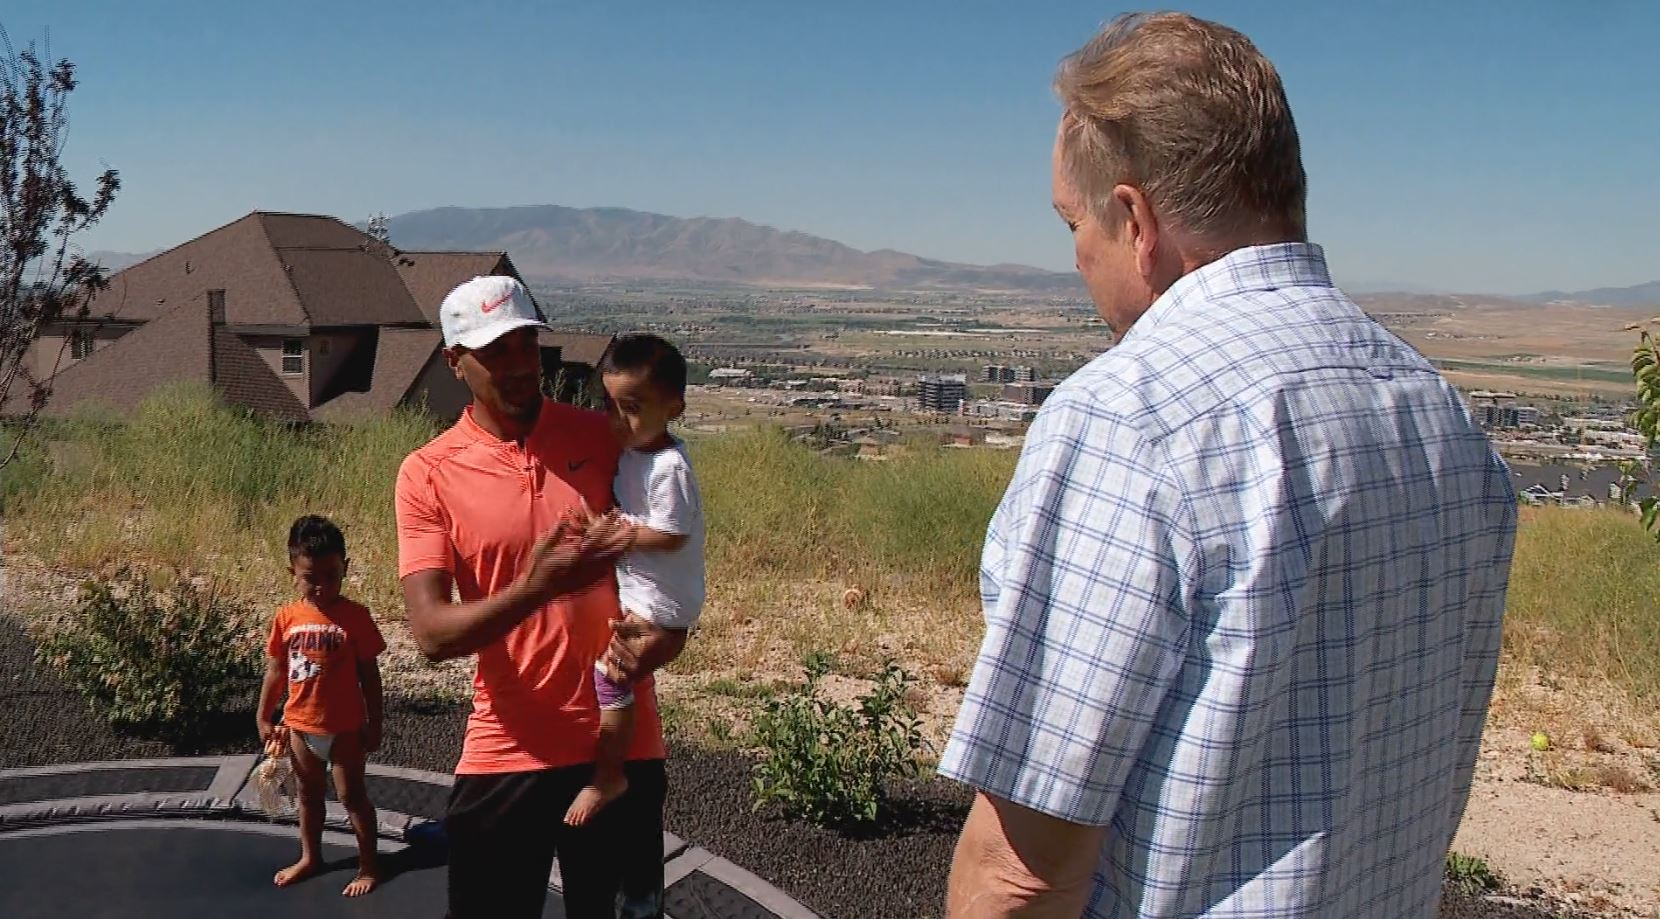 Utah's own PGA Pro Tony Finau is coming off a top 5 finish at the U.S. Open and has found a balance between his professional life, his family and his foundation.{&amp;nbsp;} (Photo: Kurt Smith / KUTV)<p></p>